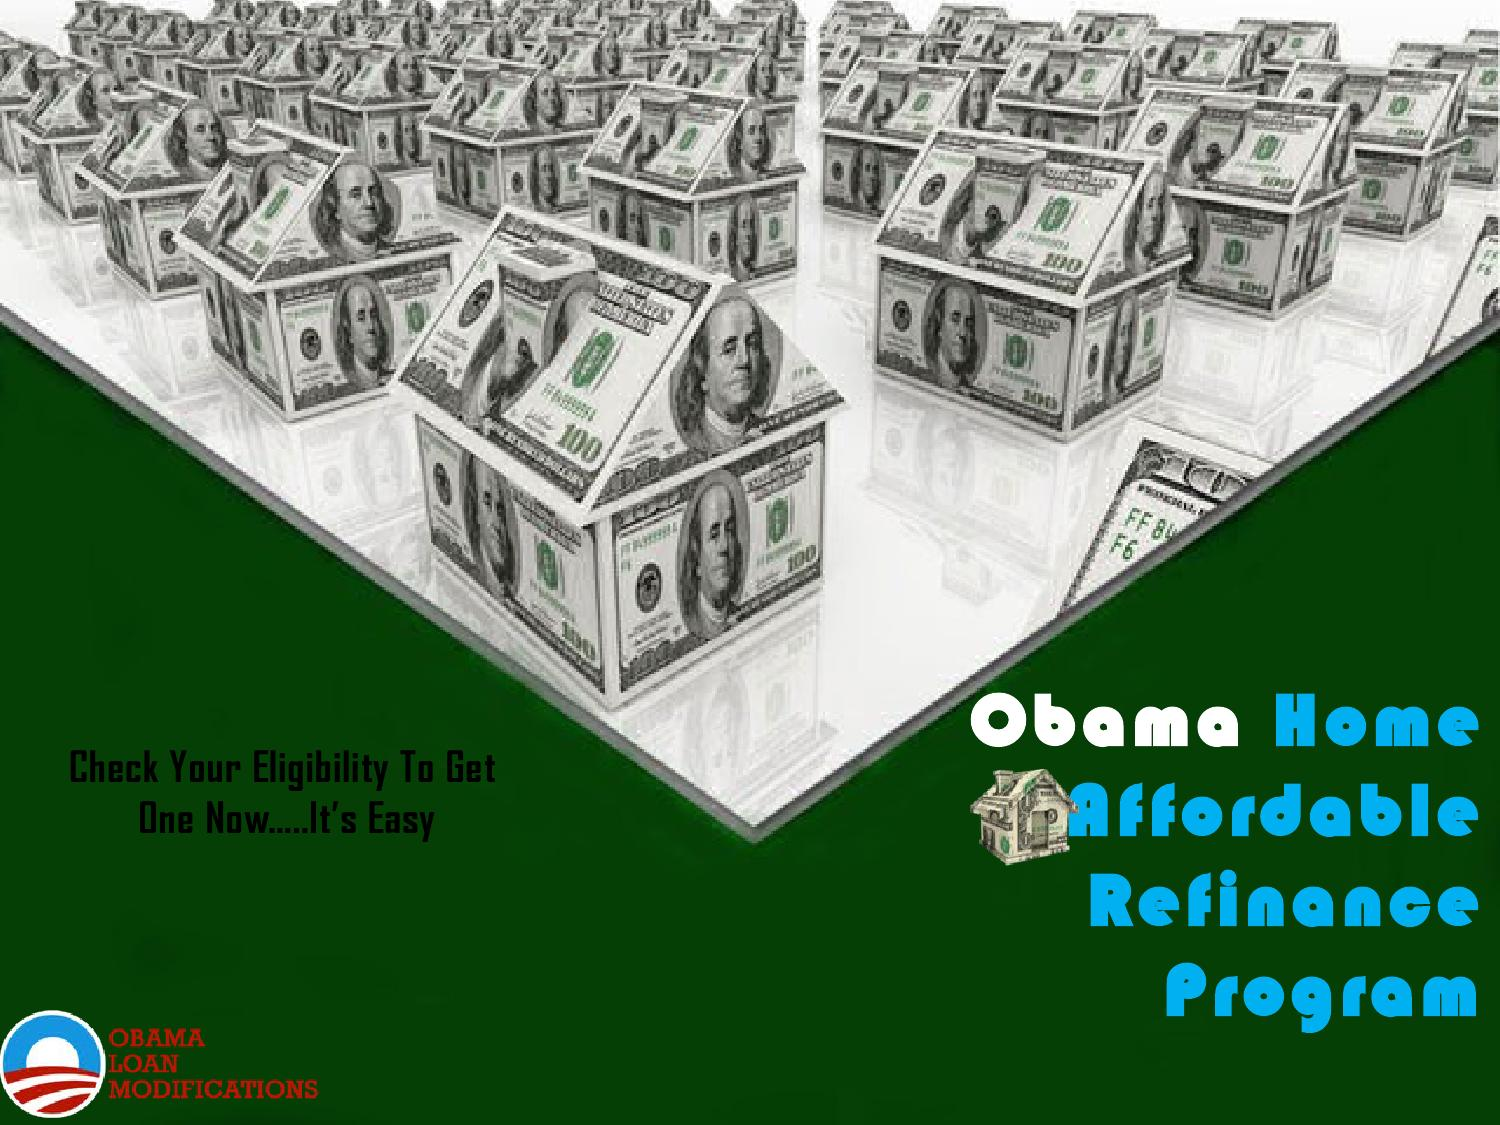 Government Home Affordable Refinance Program Eligibility